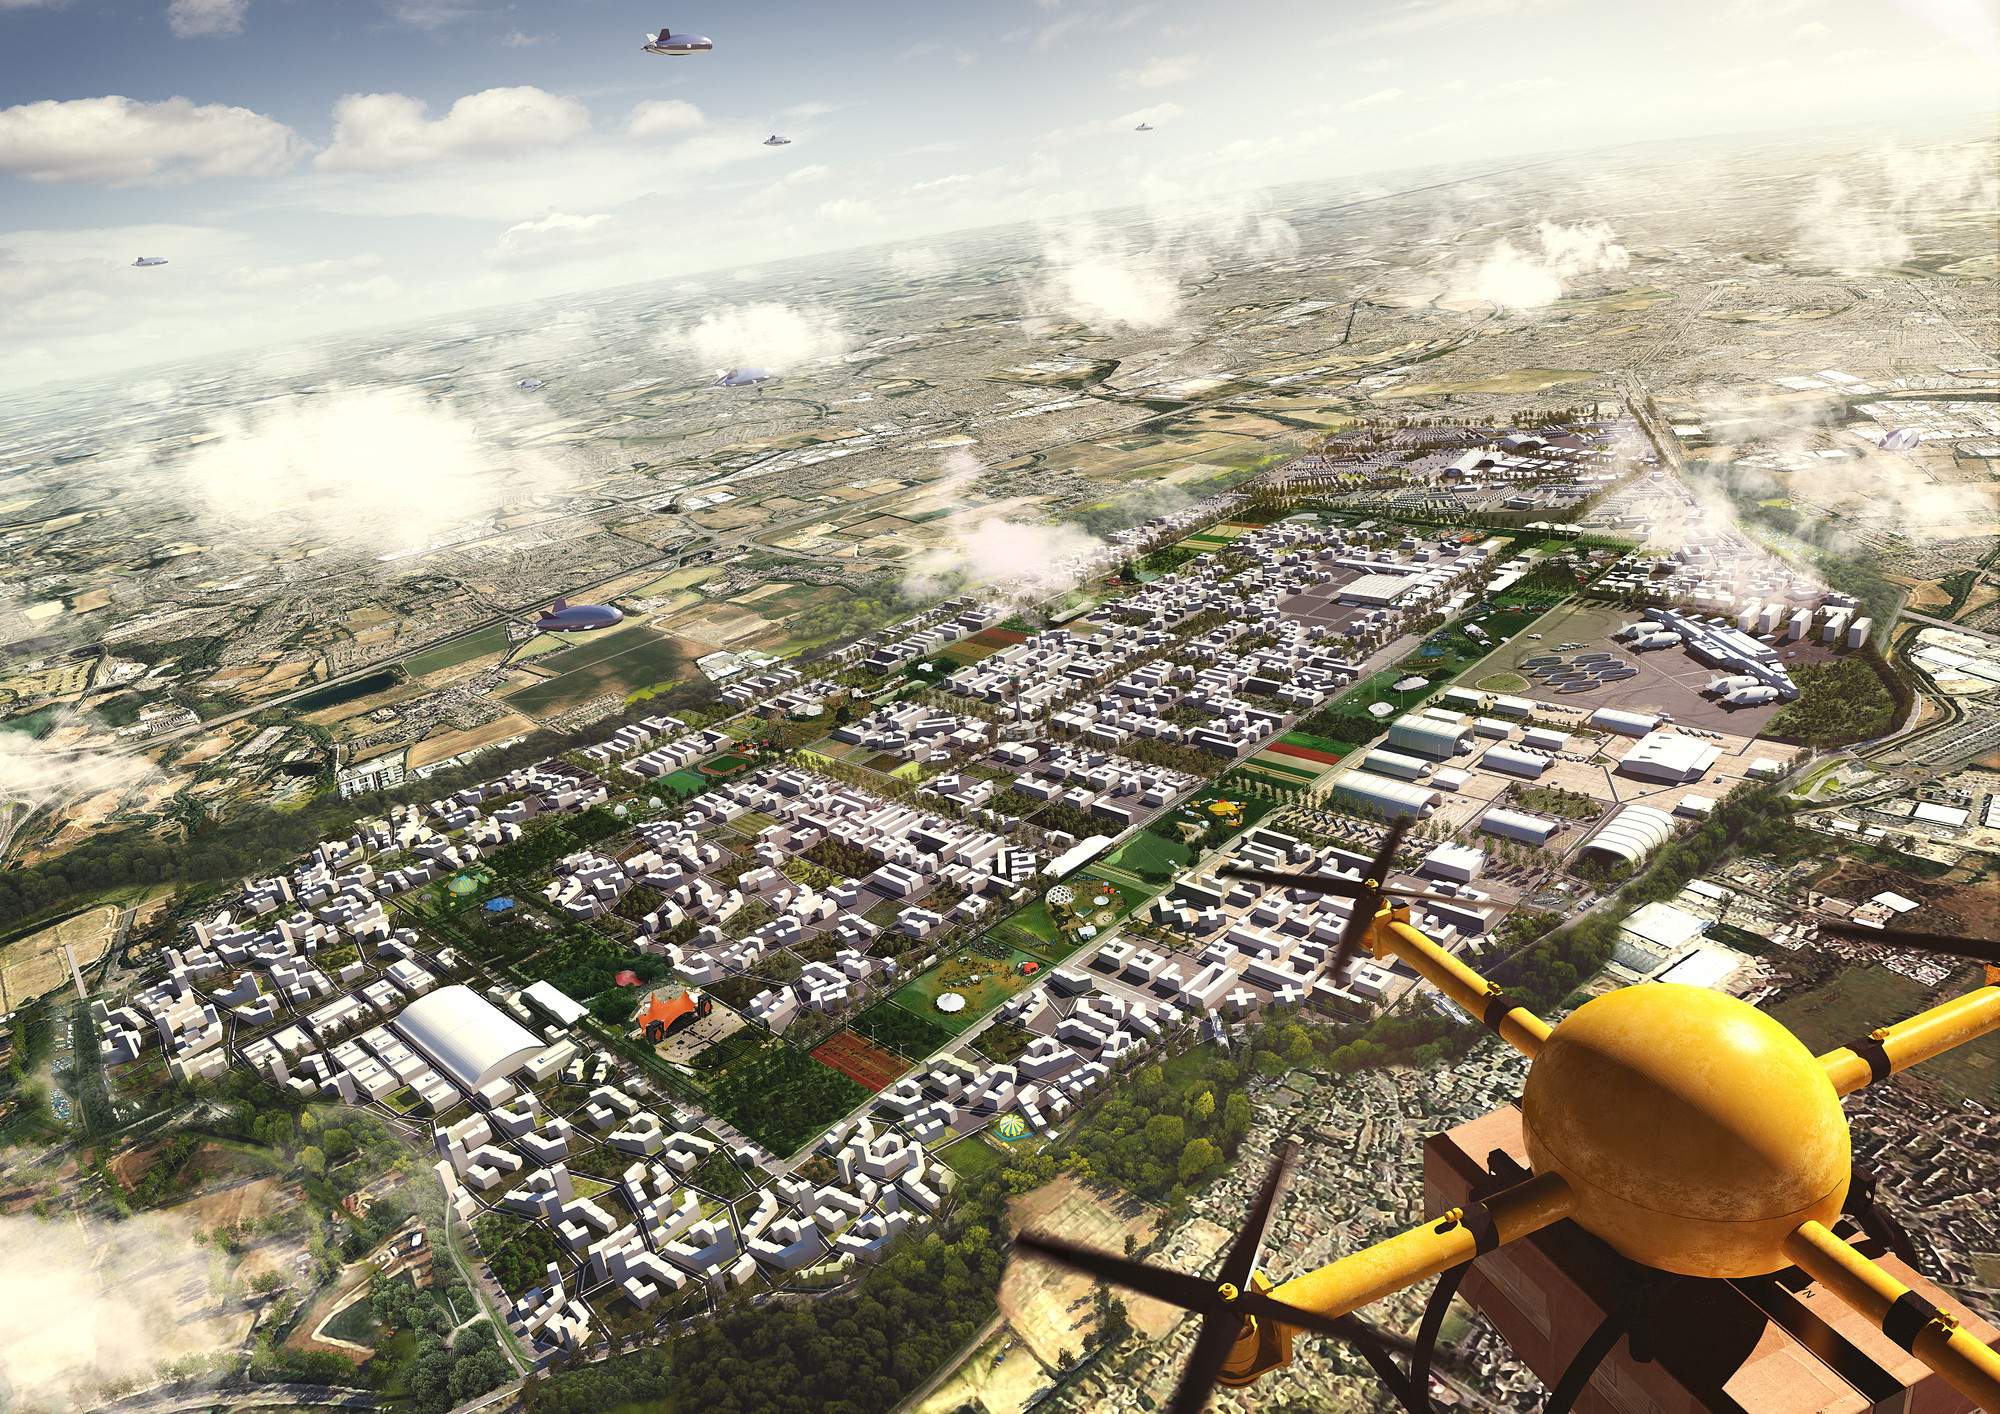 The Three Dimensional City How Drones Will Impact Future Urban Landscape Hawkins